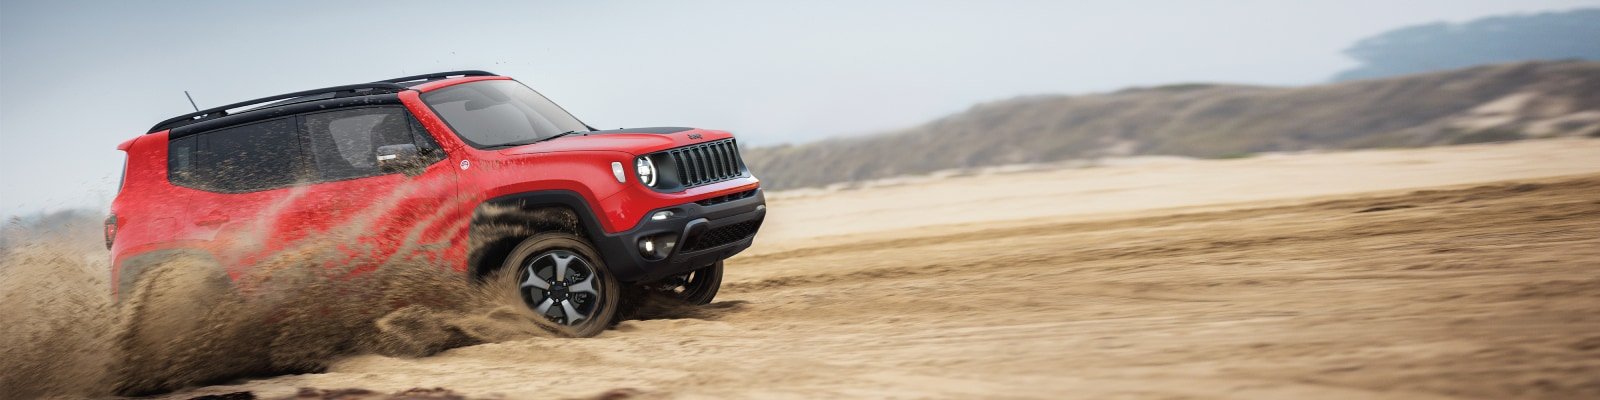 New Jeep Renegade driving through the desert